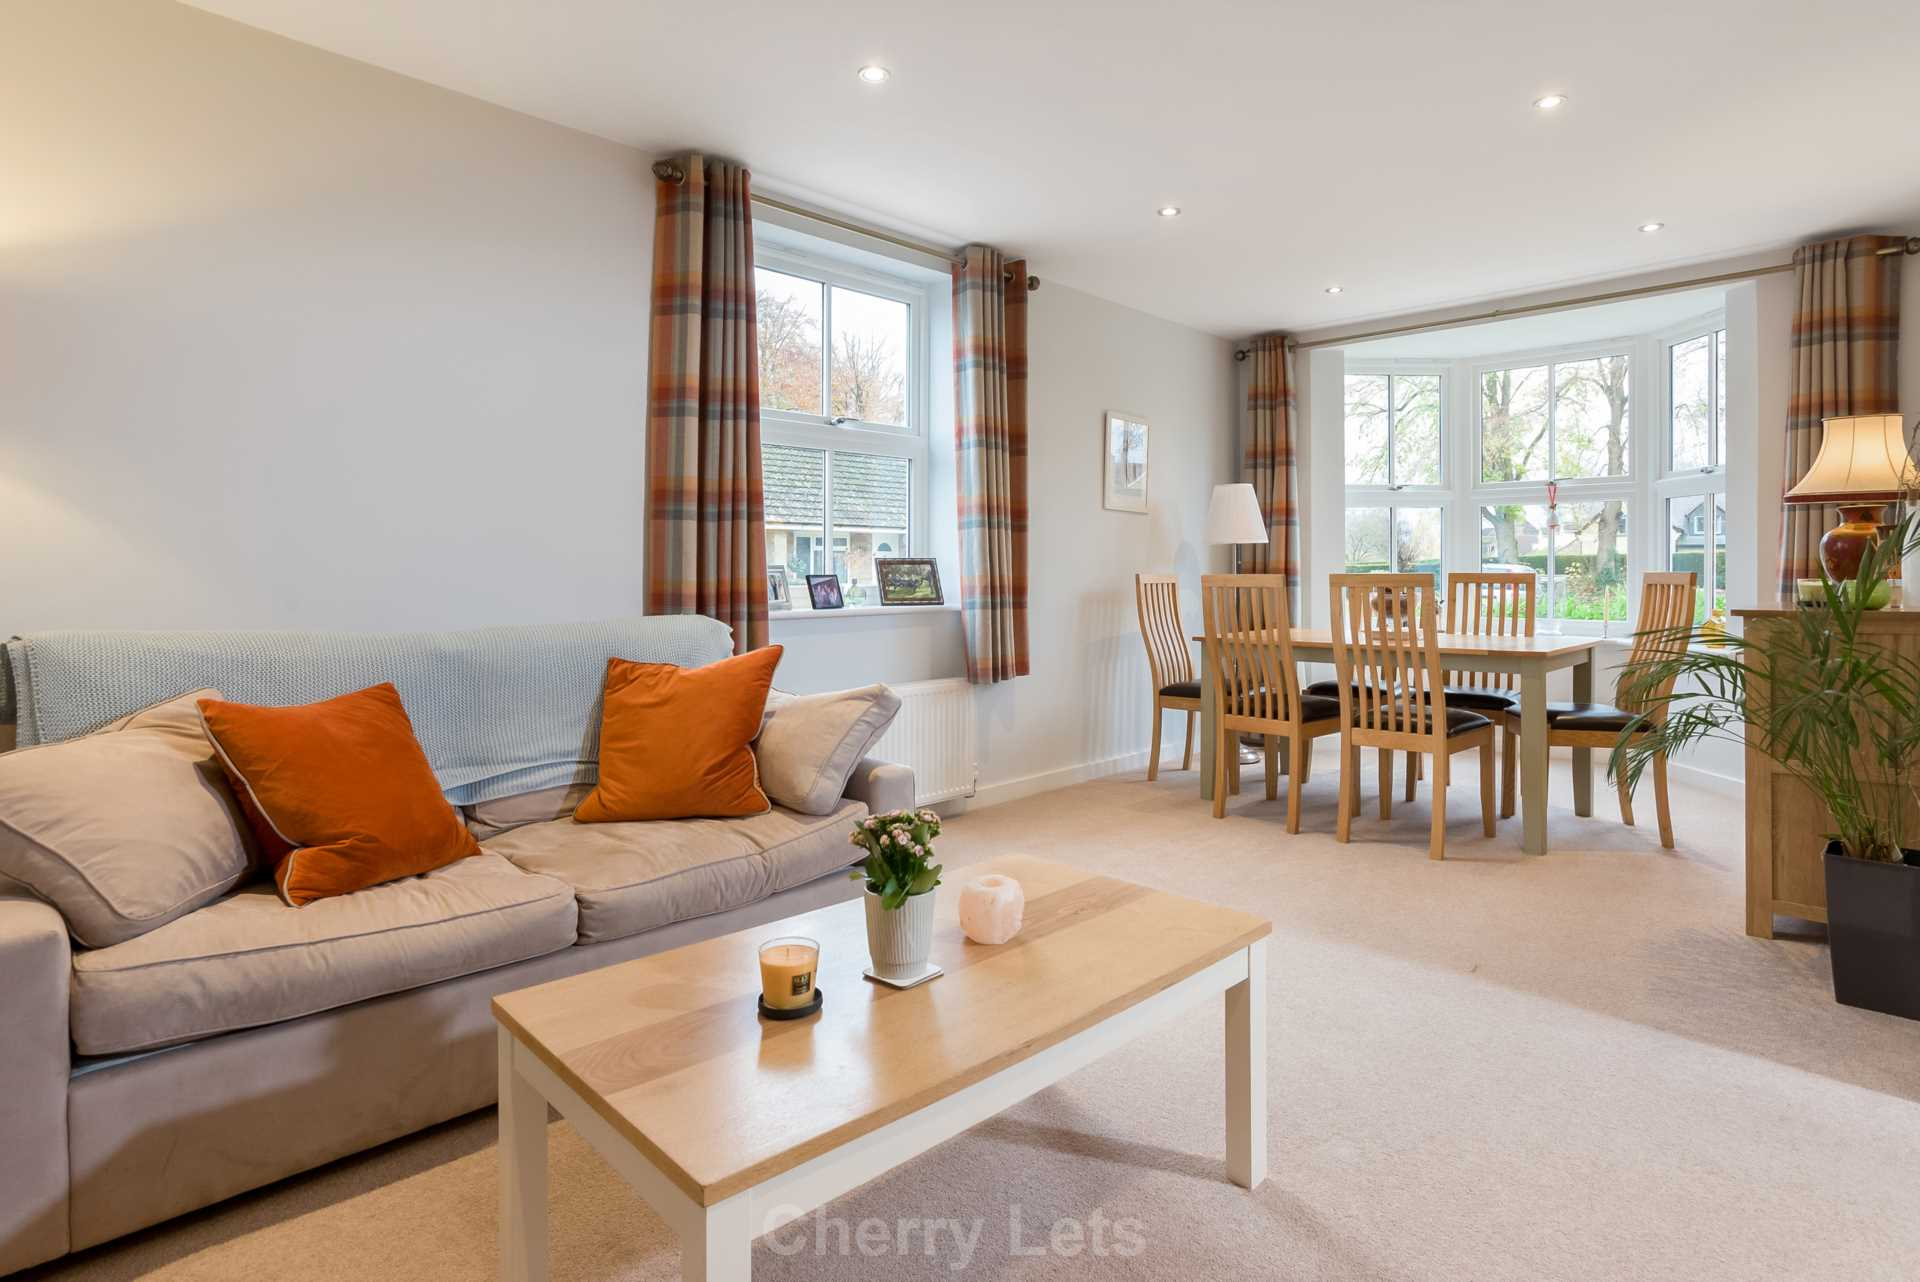 2 bed apartment to rent in Astrop Grange, Kings Sutton, OX17 - Property Image 1